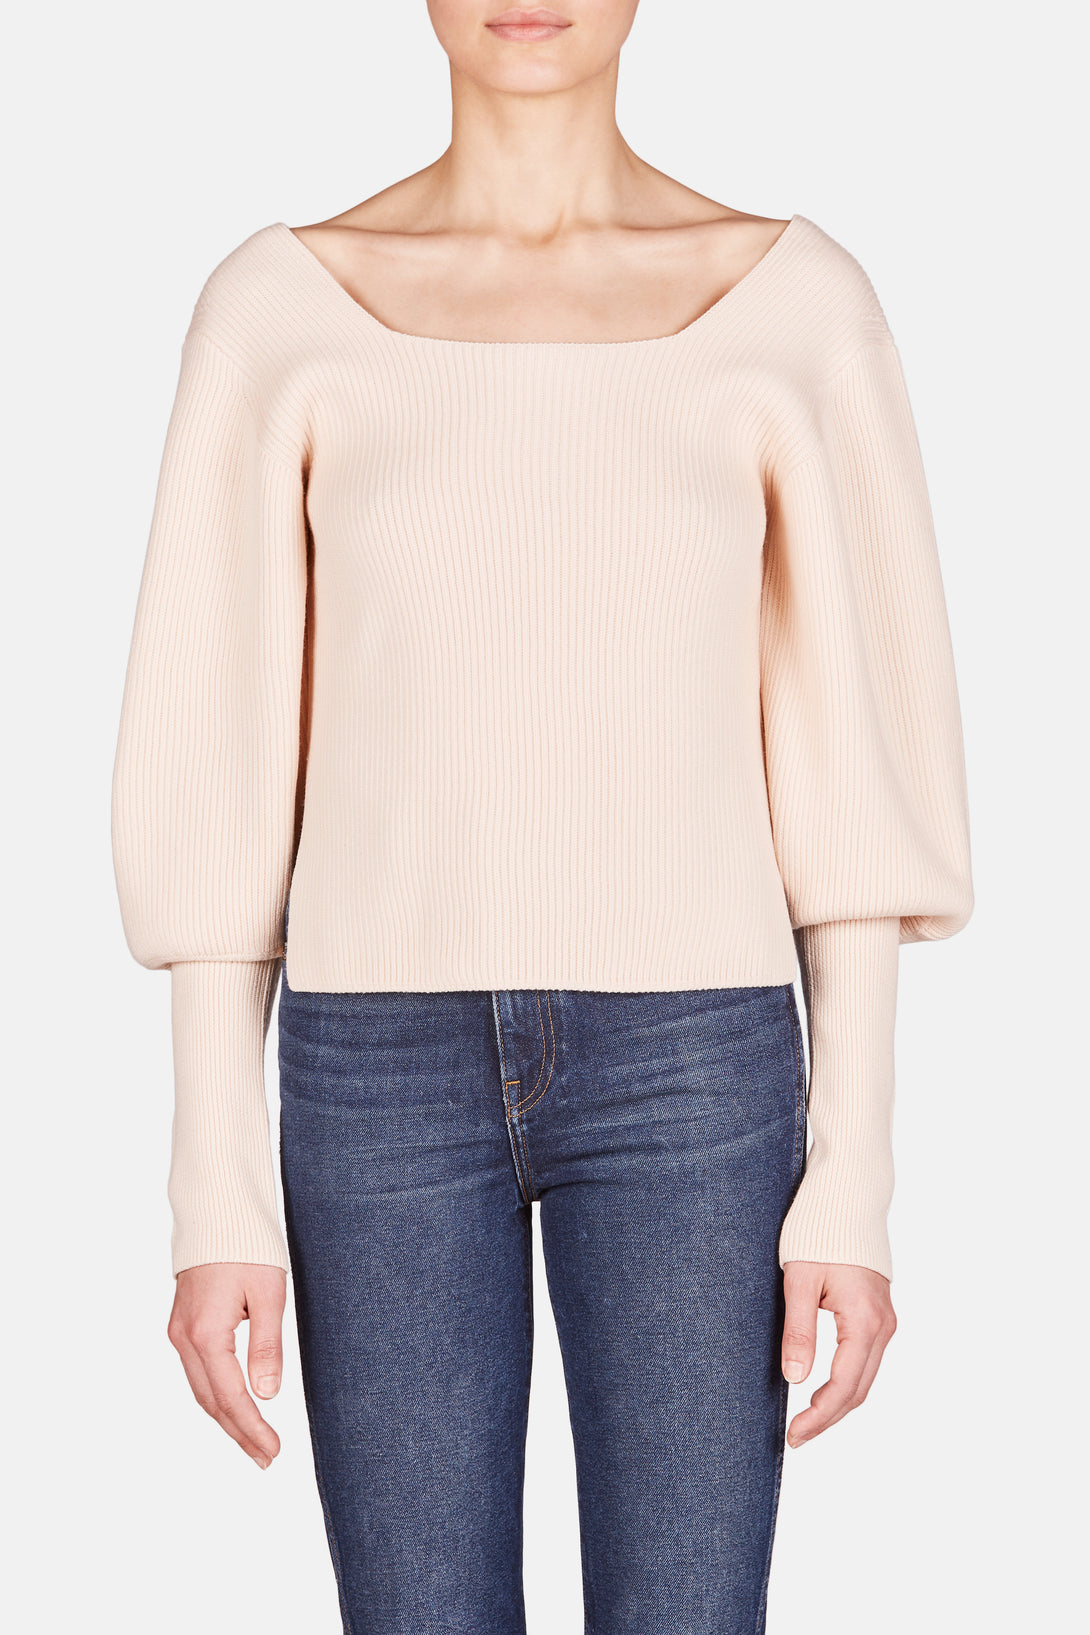 Lynette Puff Sleeve Sweater - Ivory